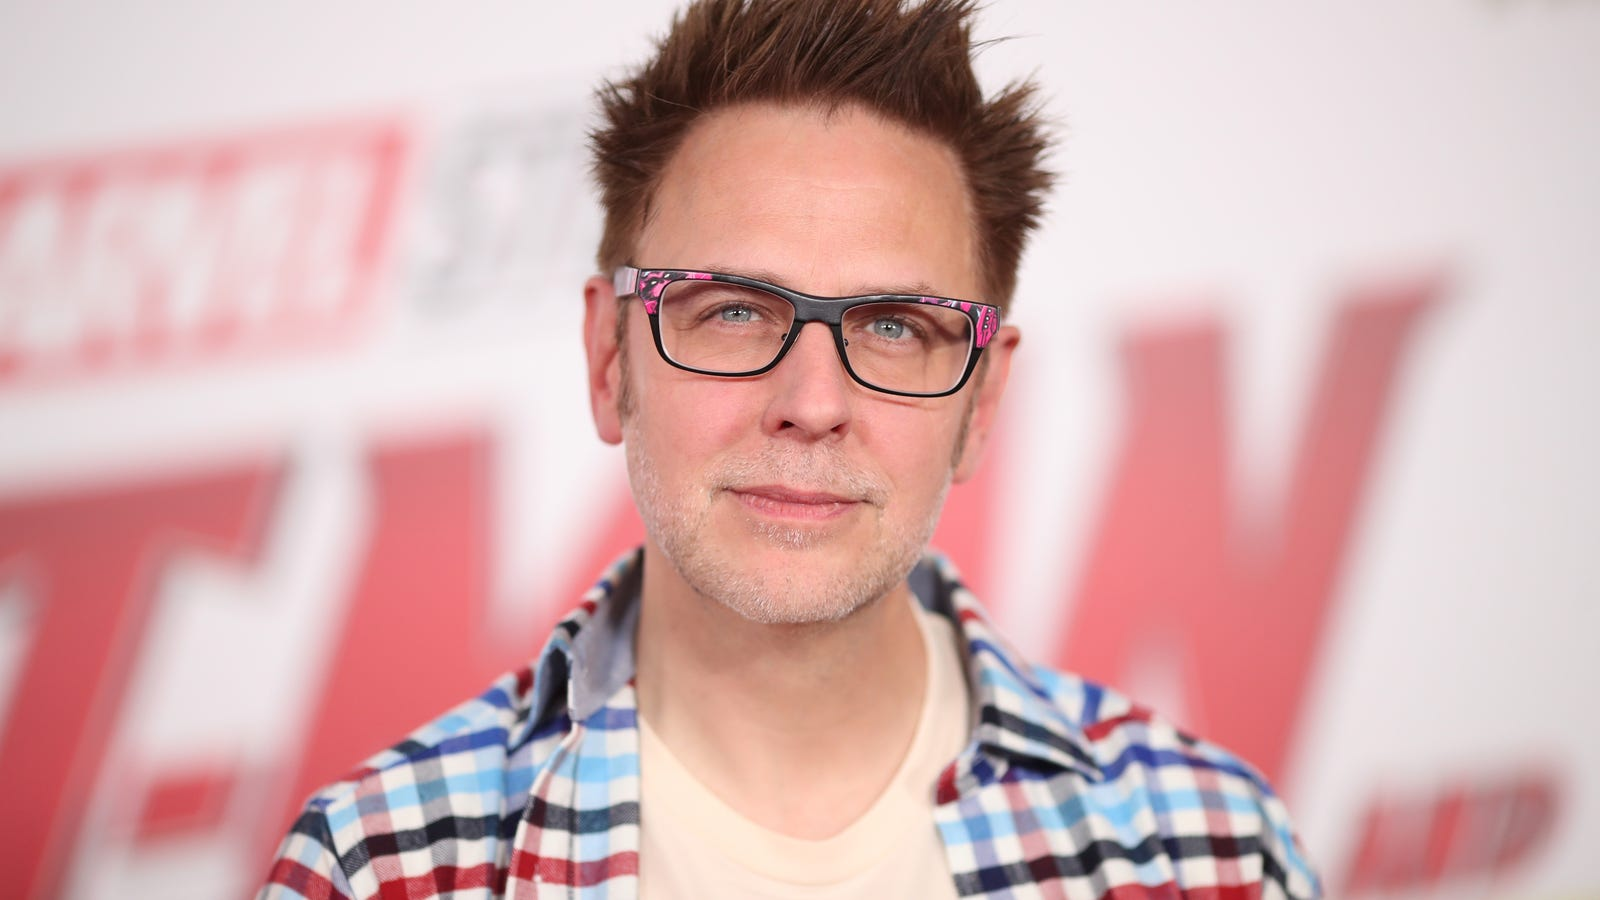 It's Rumor Time: James Gunn might get rehired for Guardians Vol. 3